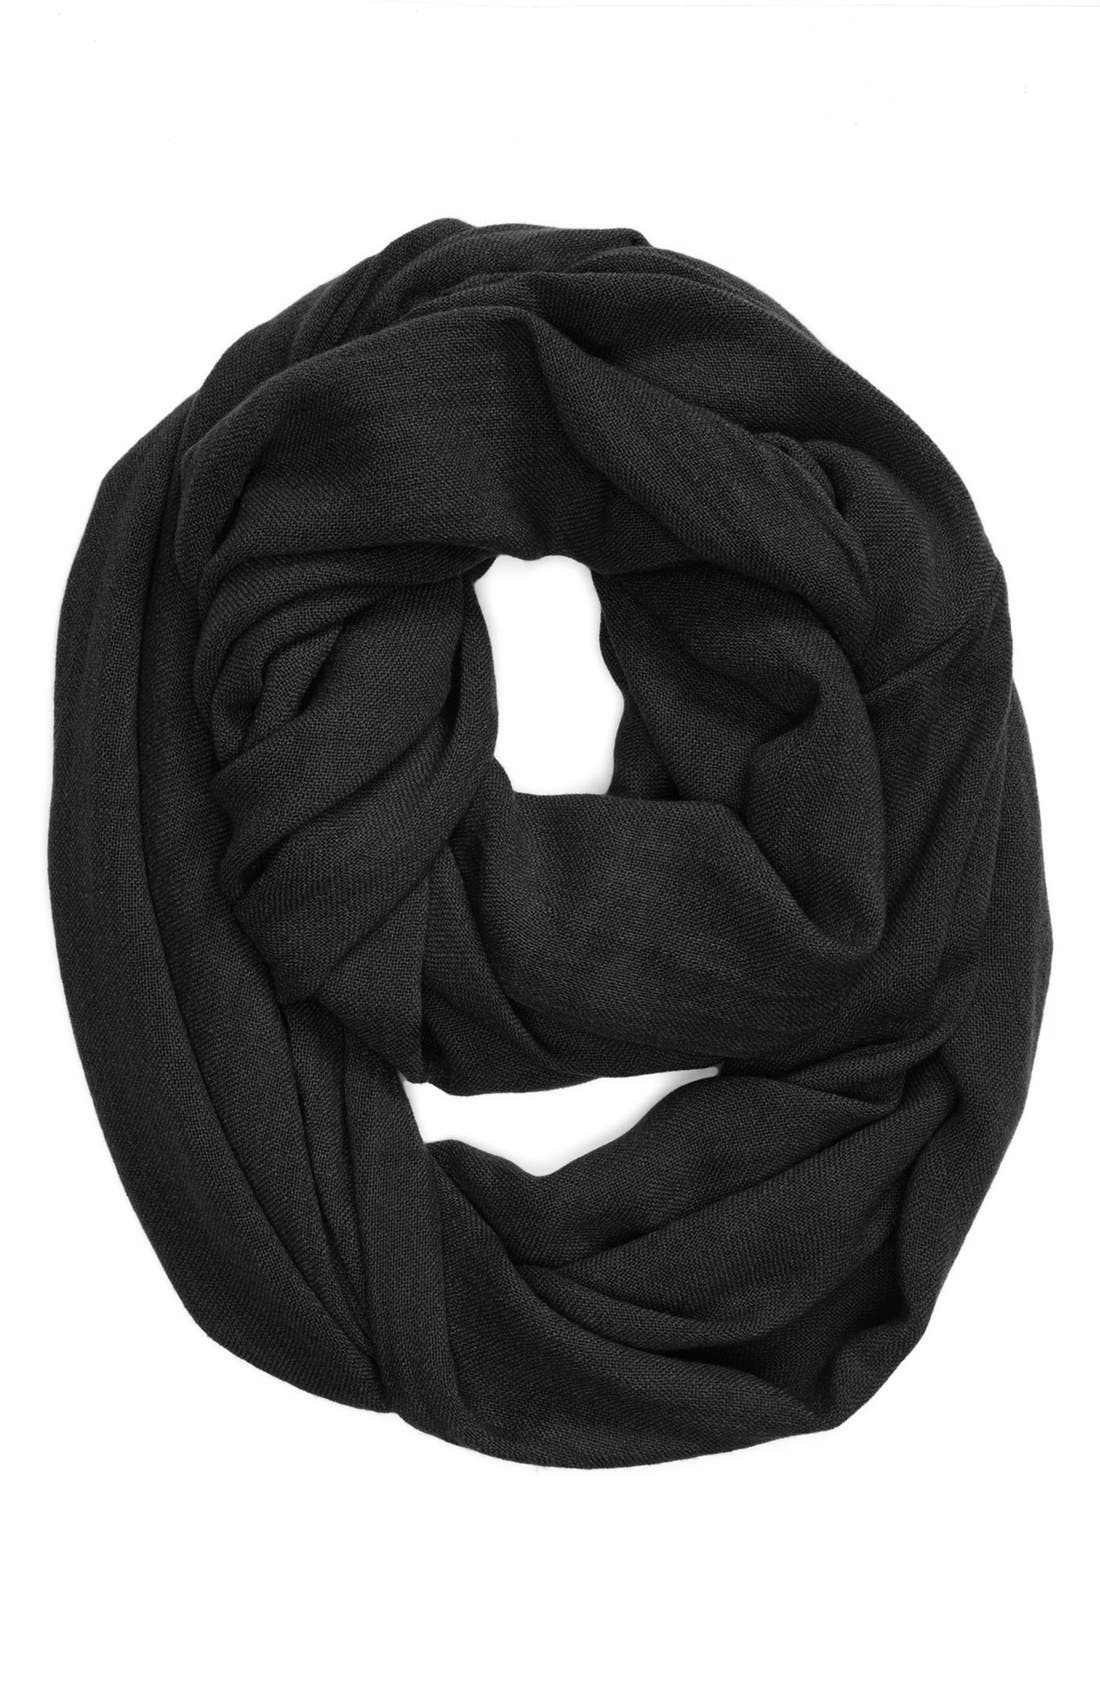 Alternate Image 1 Selected - Accessory Street Infinity Scarf